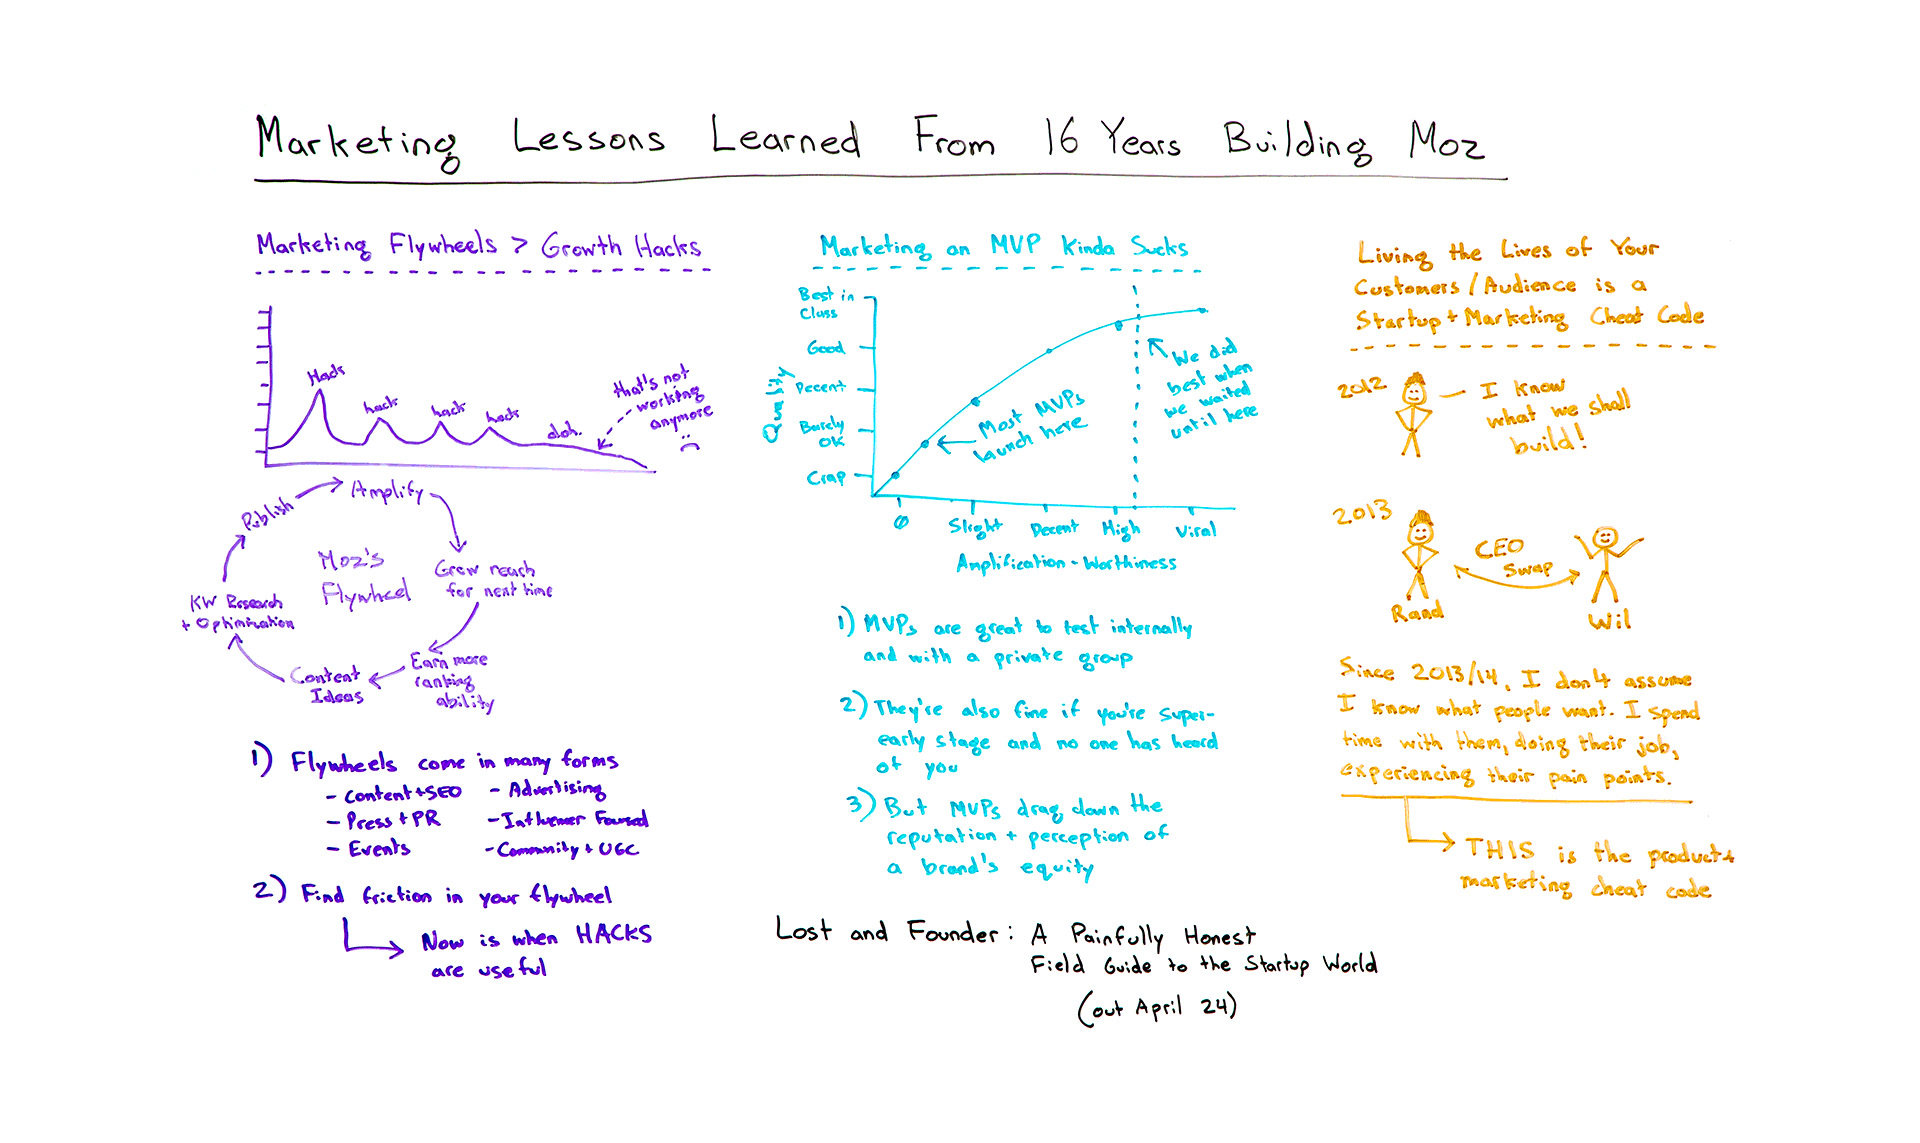 Marketing Lessons Learned from 16 Years of Building Moz – Whiteboard Friday